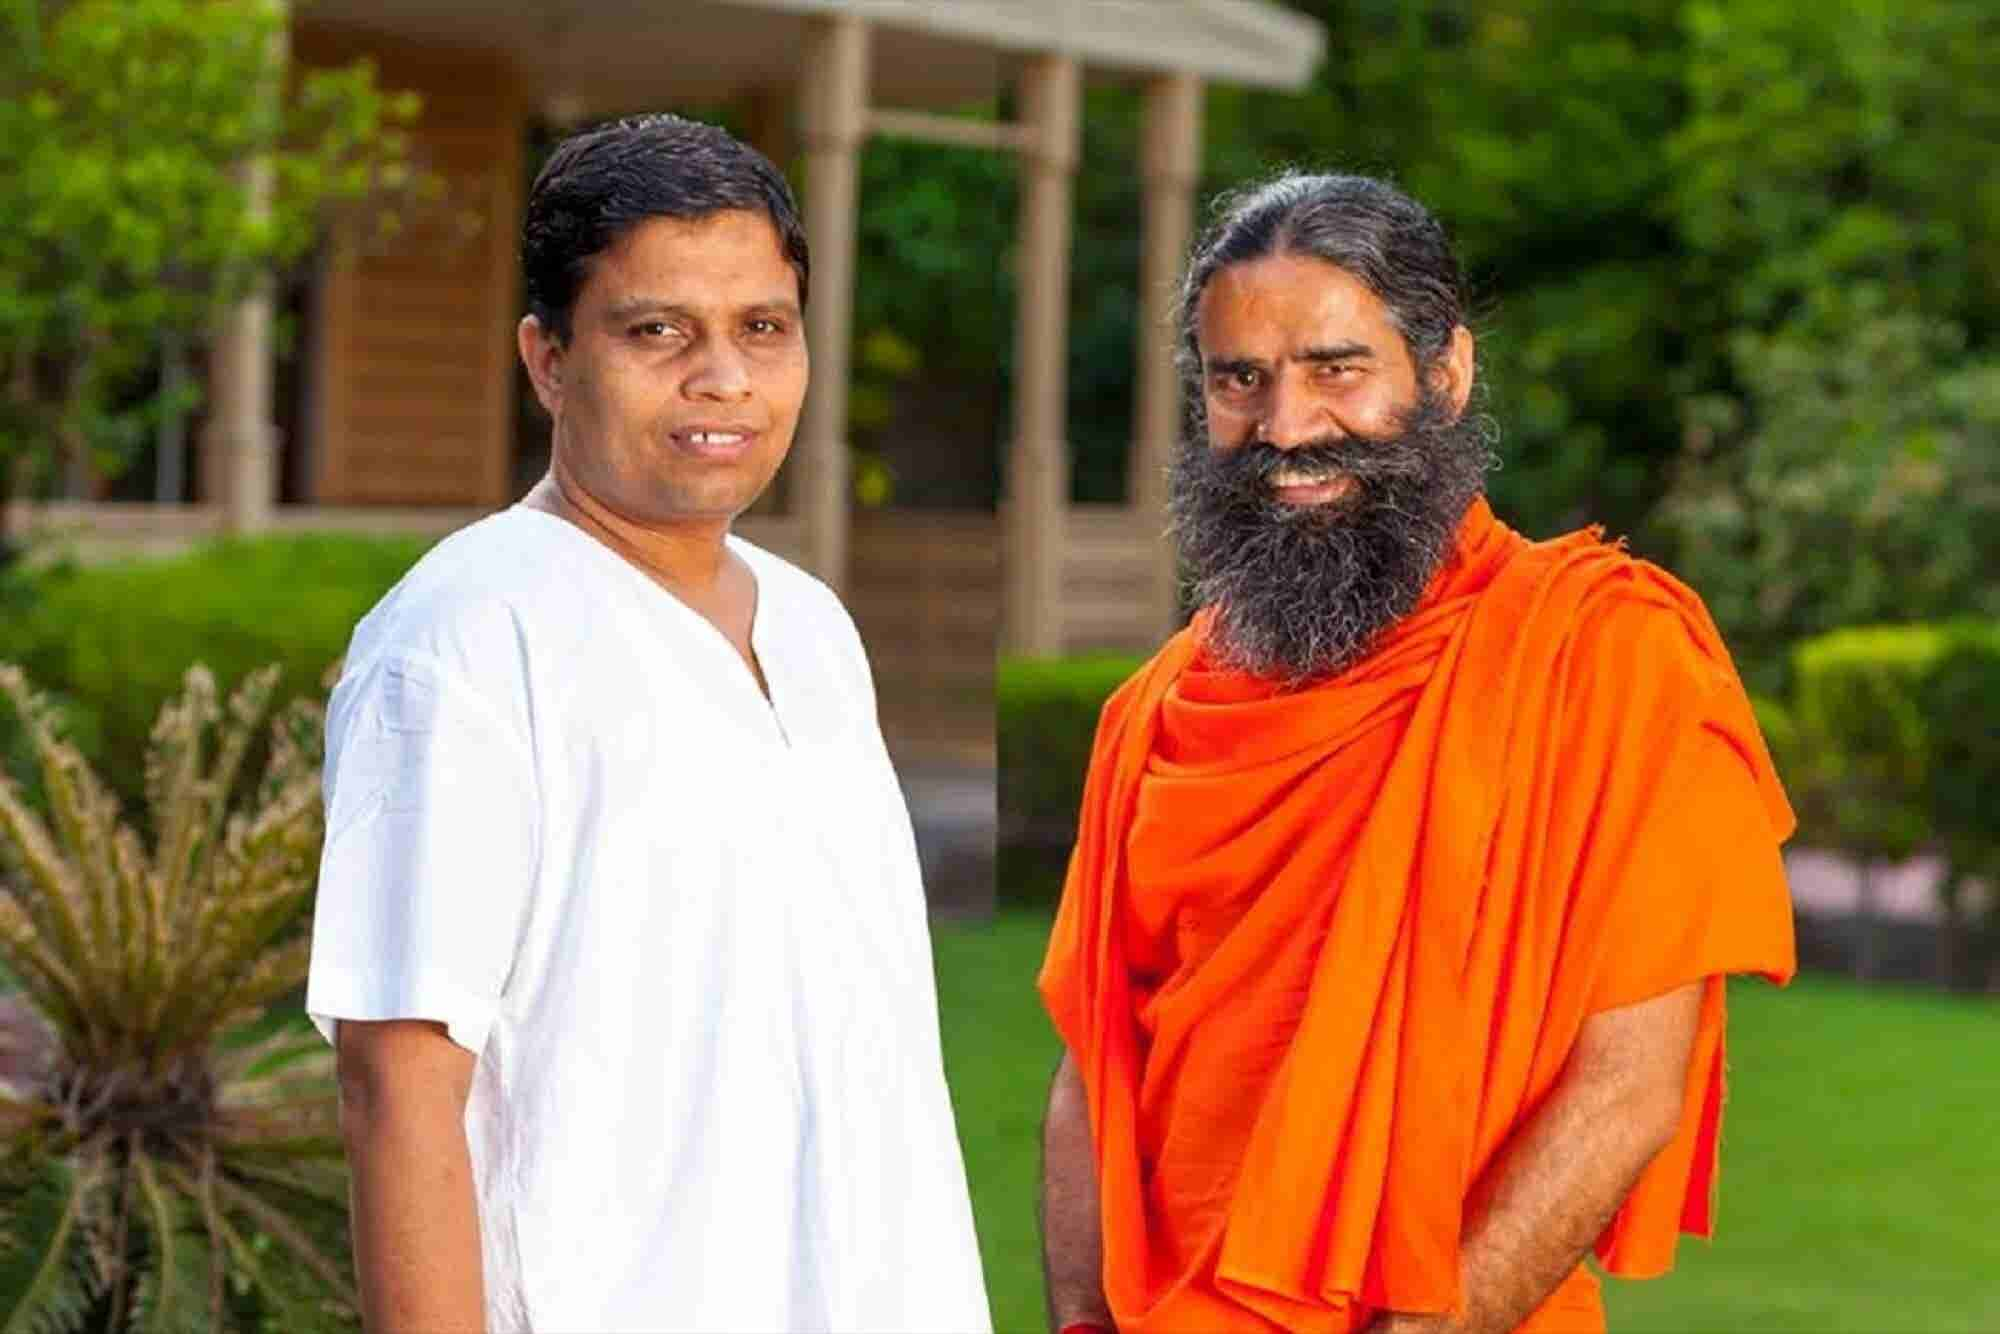 Beware! This Unstoppable Yoga Guru Now Eyes #5 Key Sectors